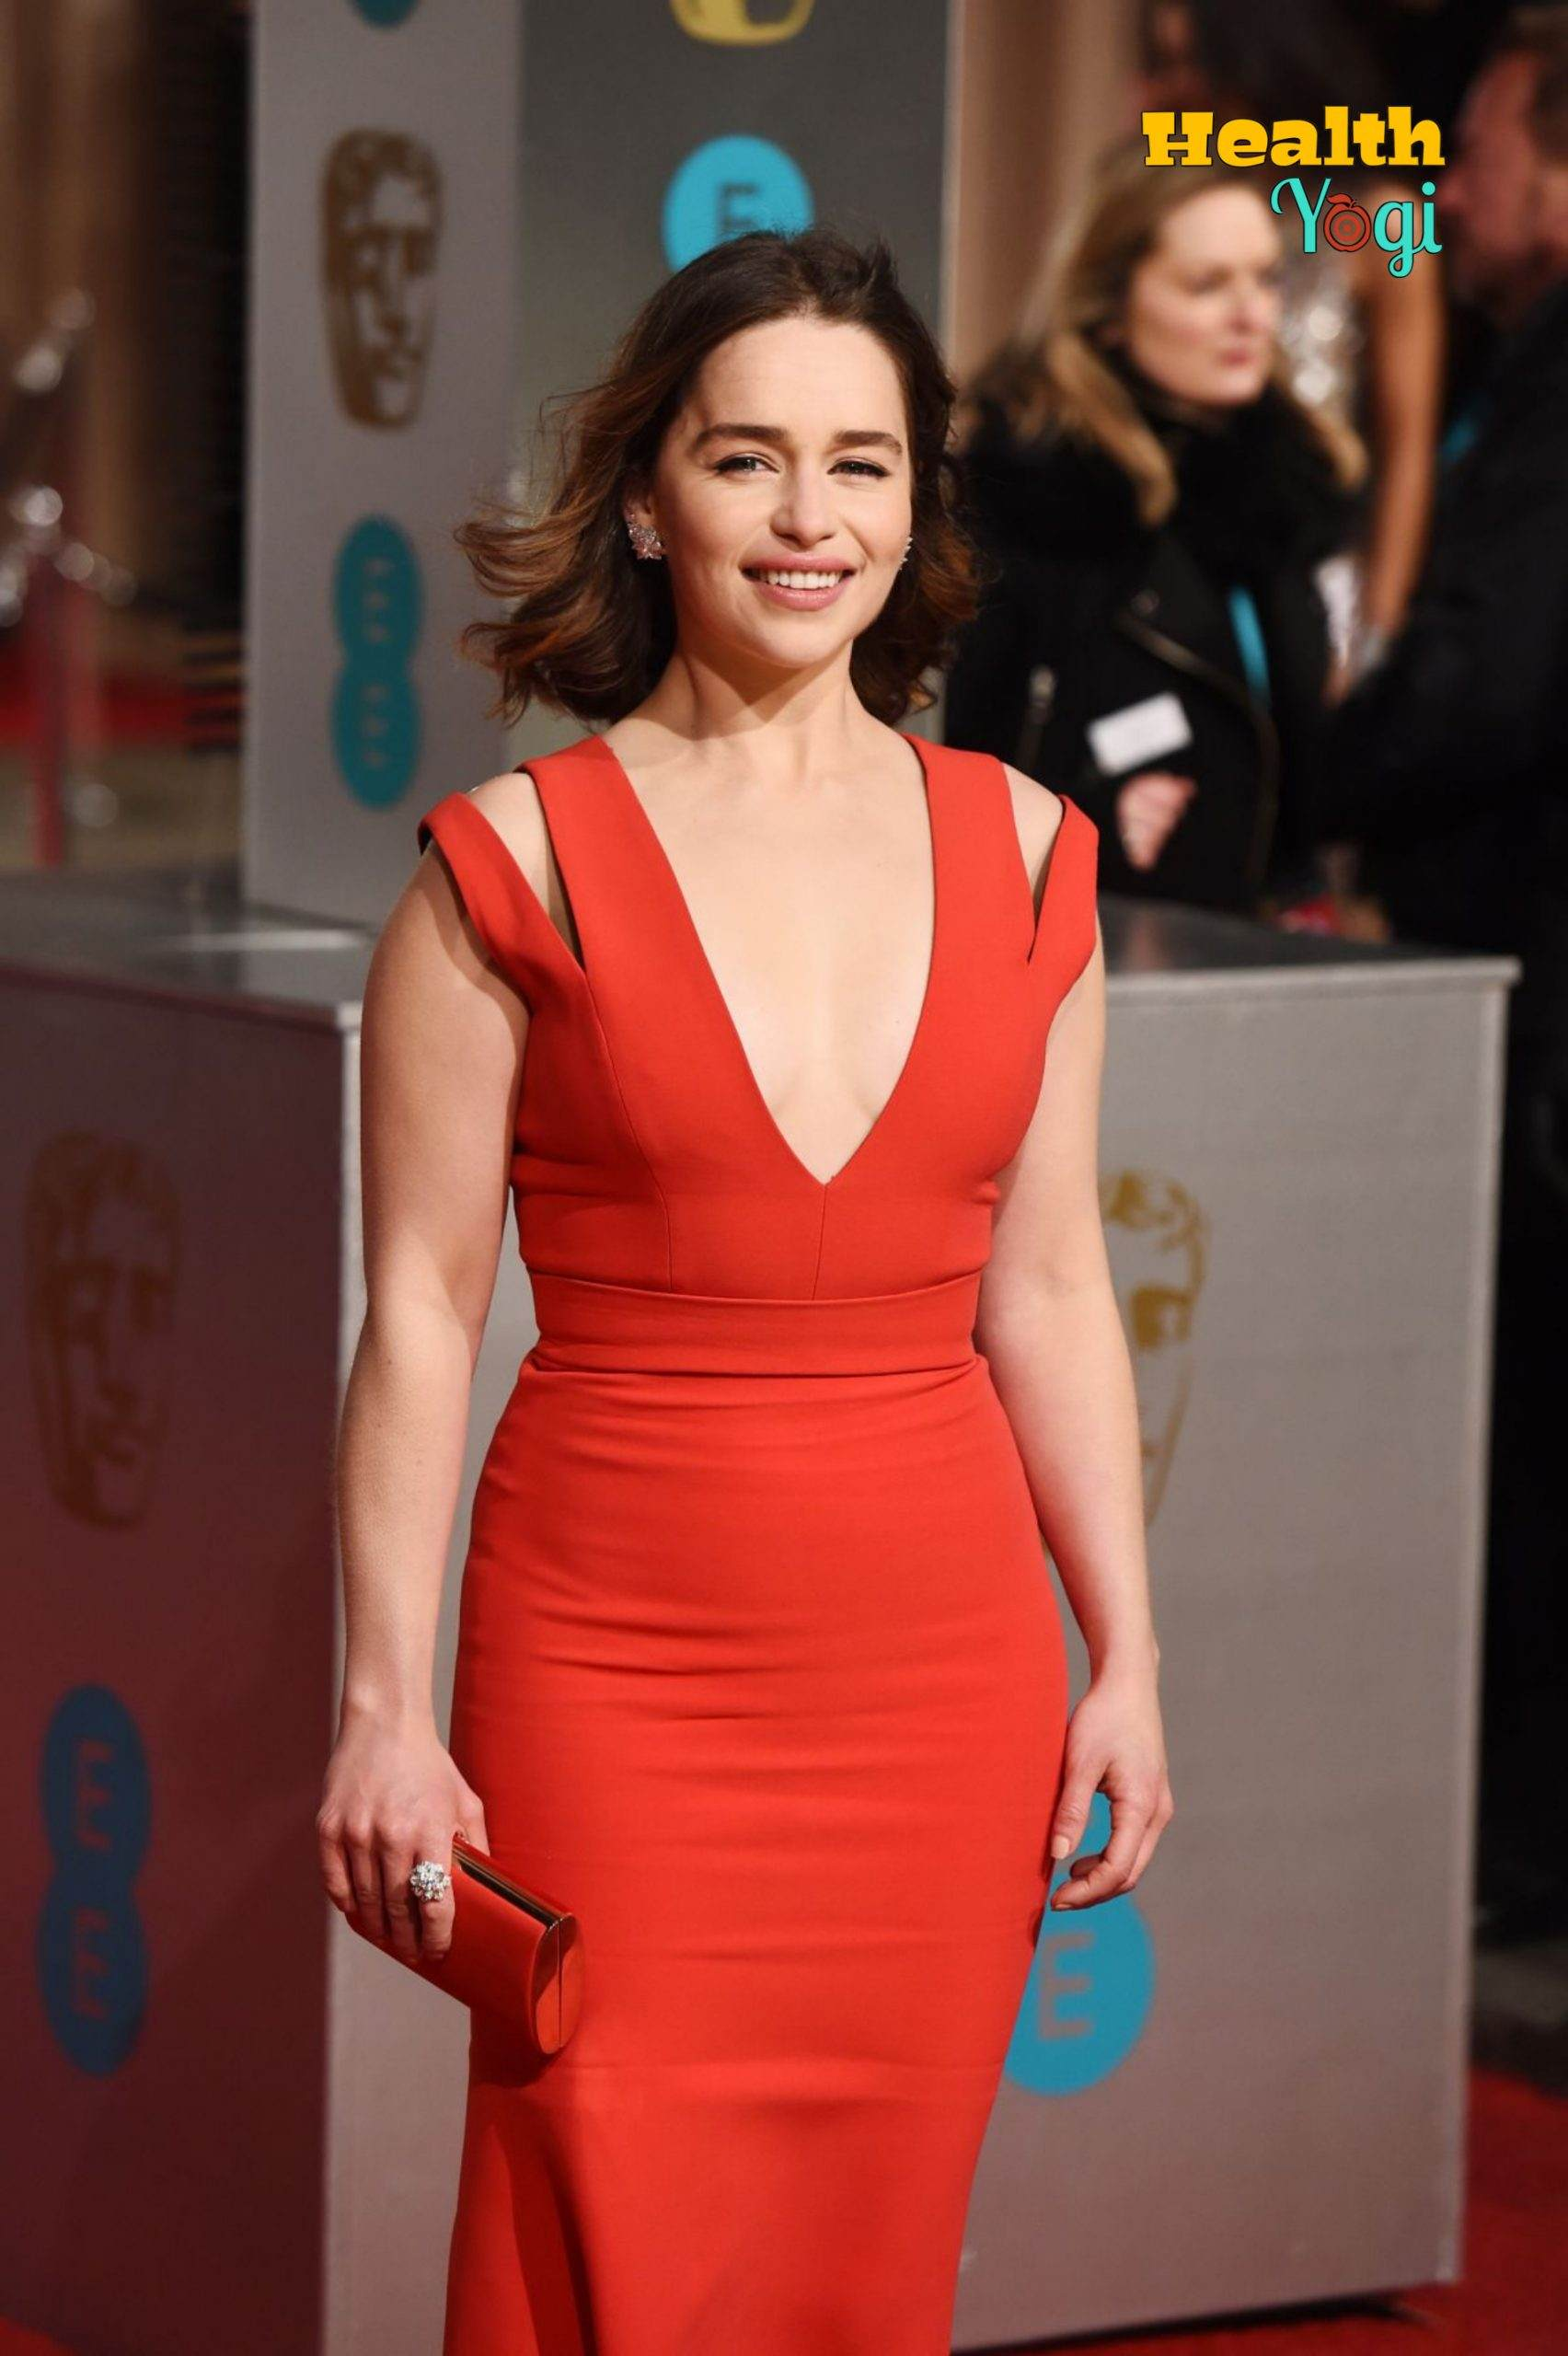 Emilia Clarke Diet Plan and Workout Routine